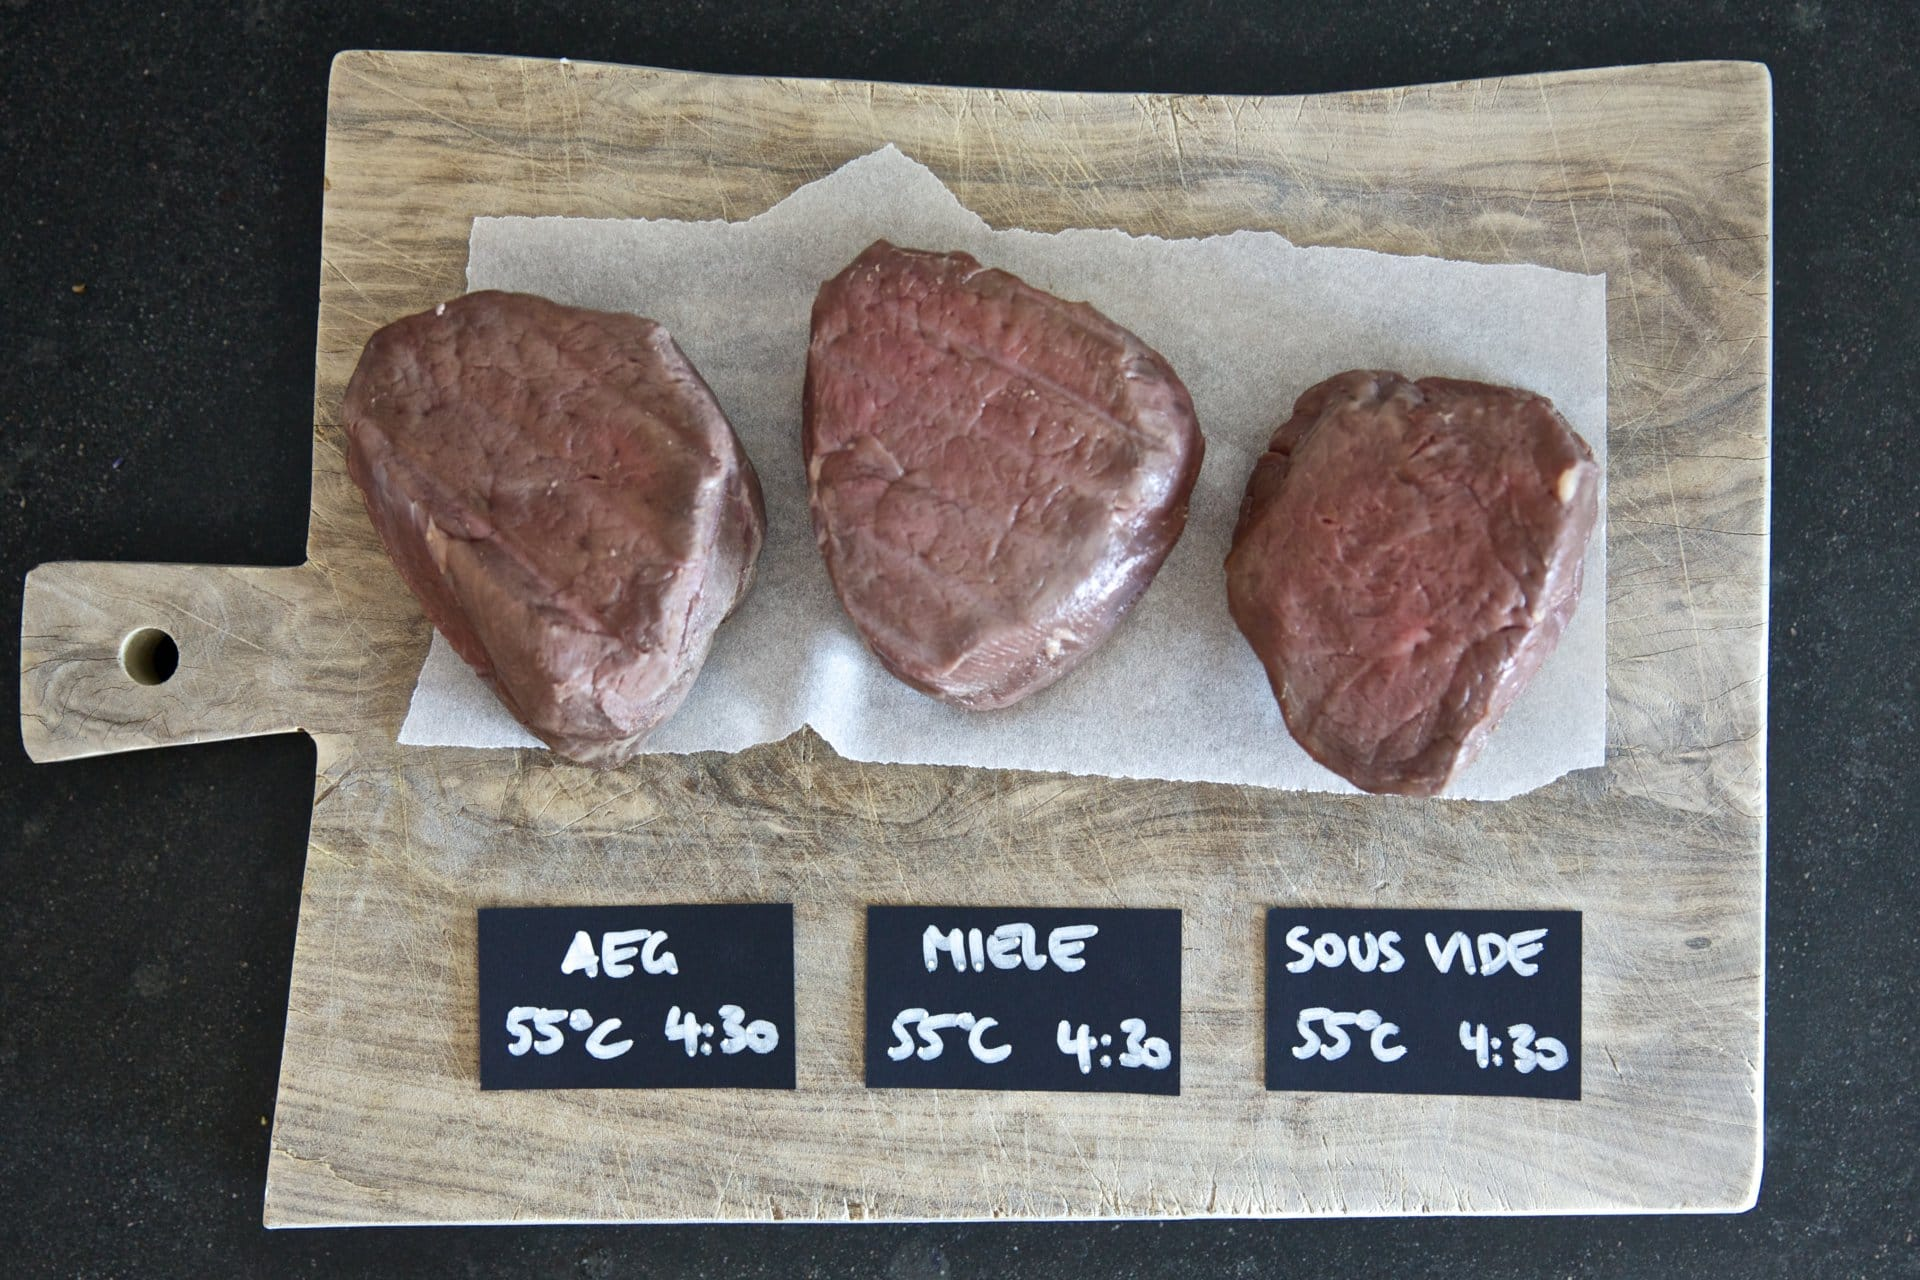 2013 06 23 steak sousvide 23